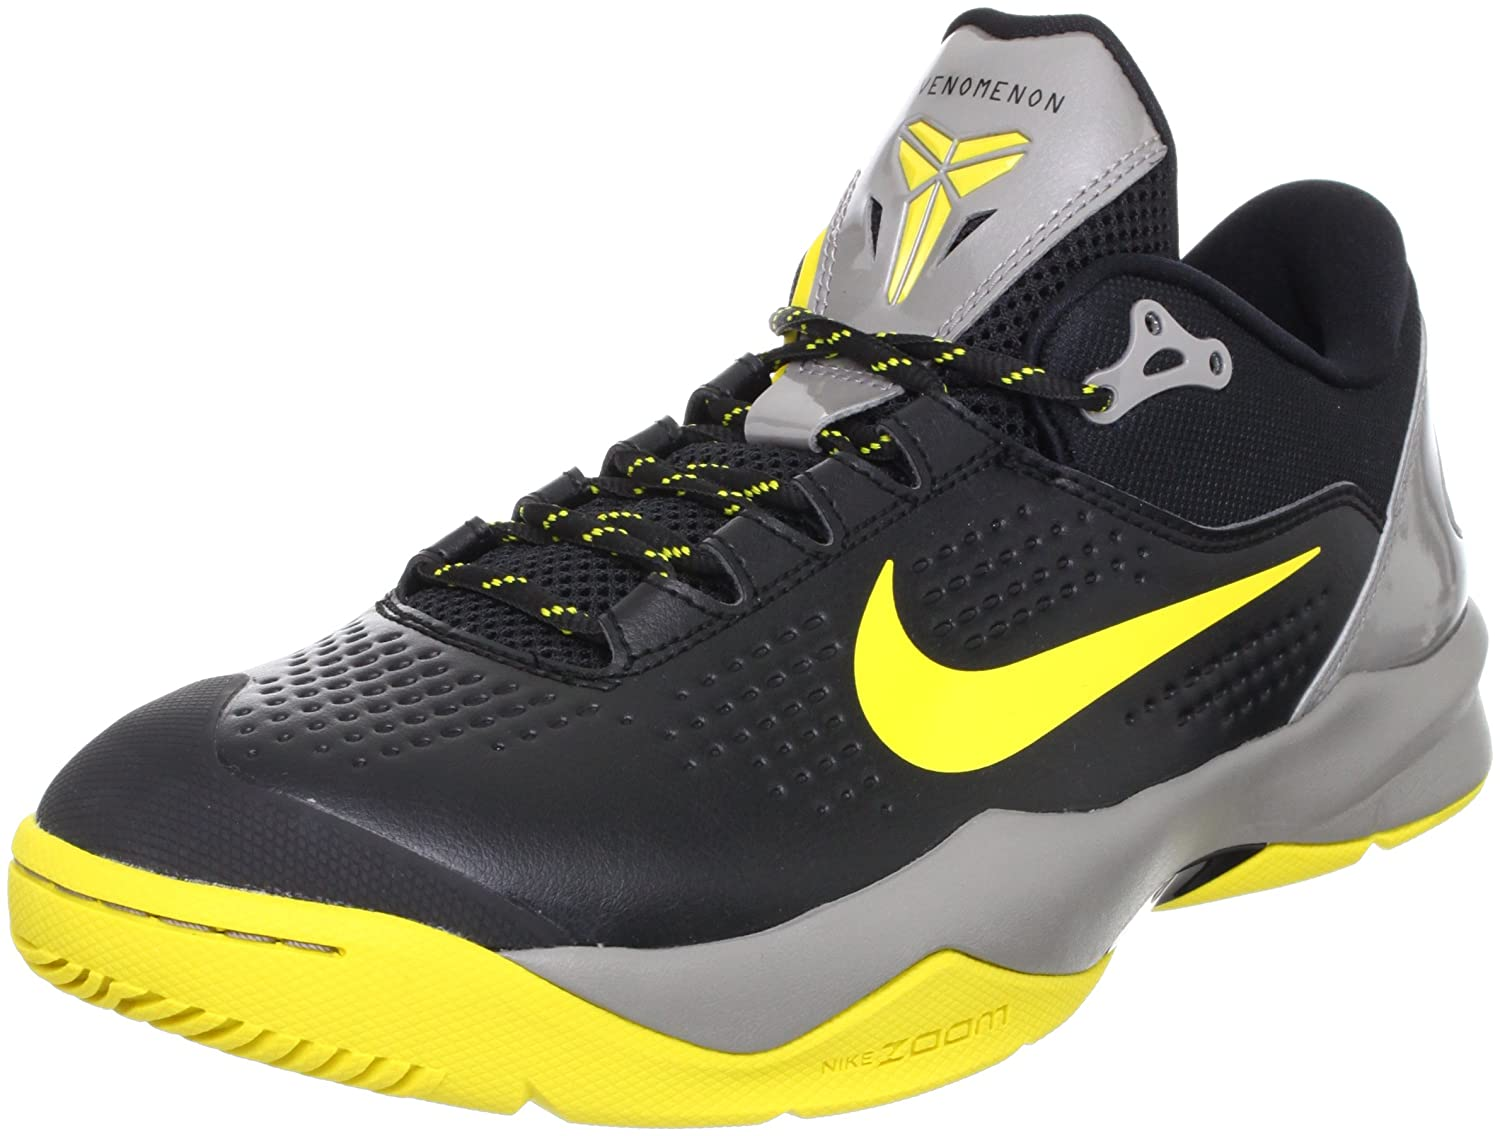 Nike Zoom Kobe Venomenon 3 555073 4 Uomo - Unisex Basketball Schuhe [11 US - 45 IT]  36 EU